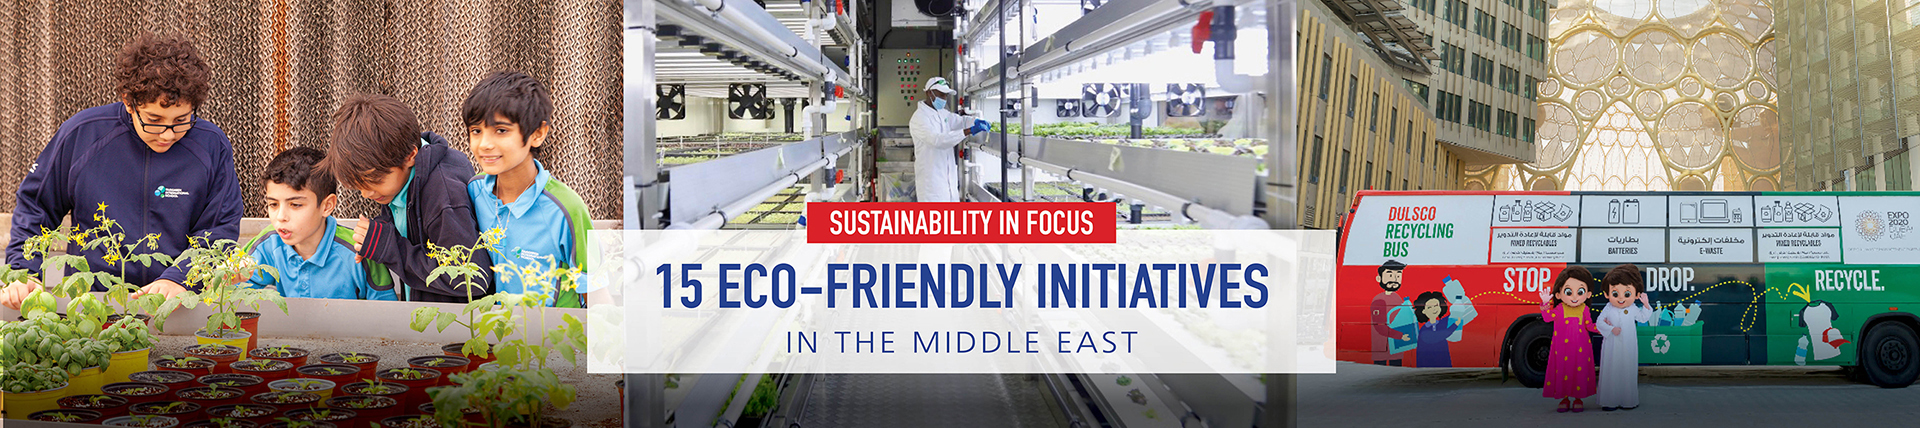 15 Eco-Friendly Initiatives In The Middle East